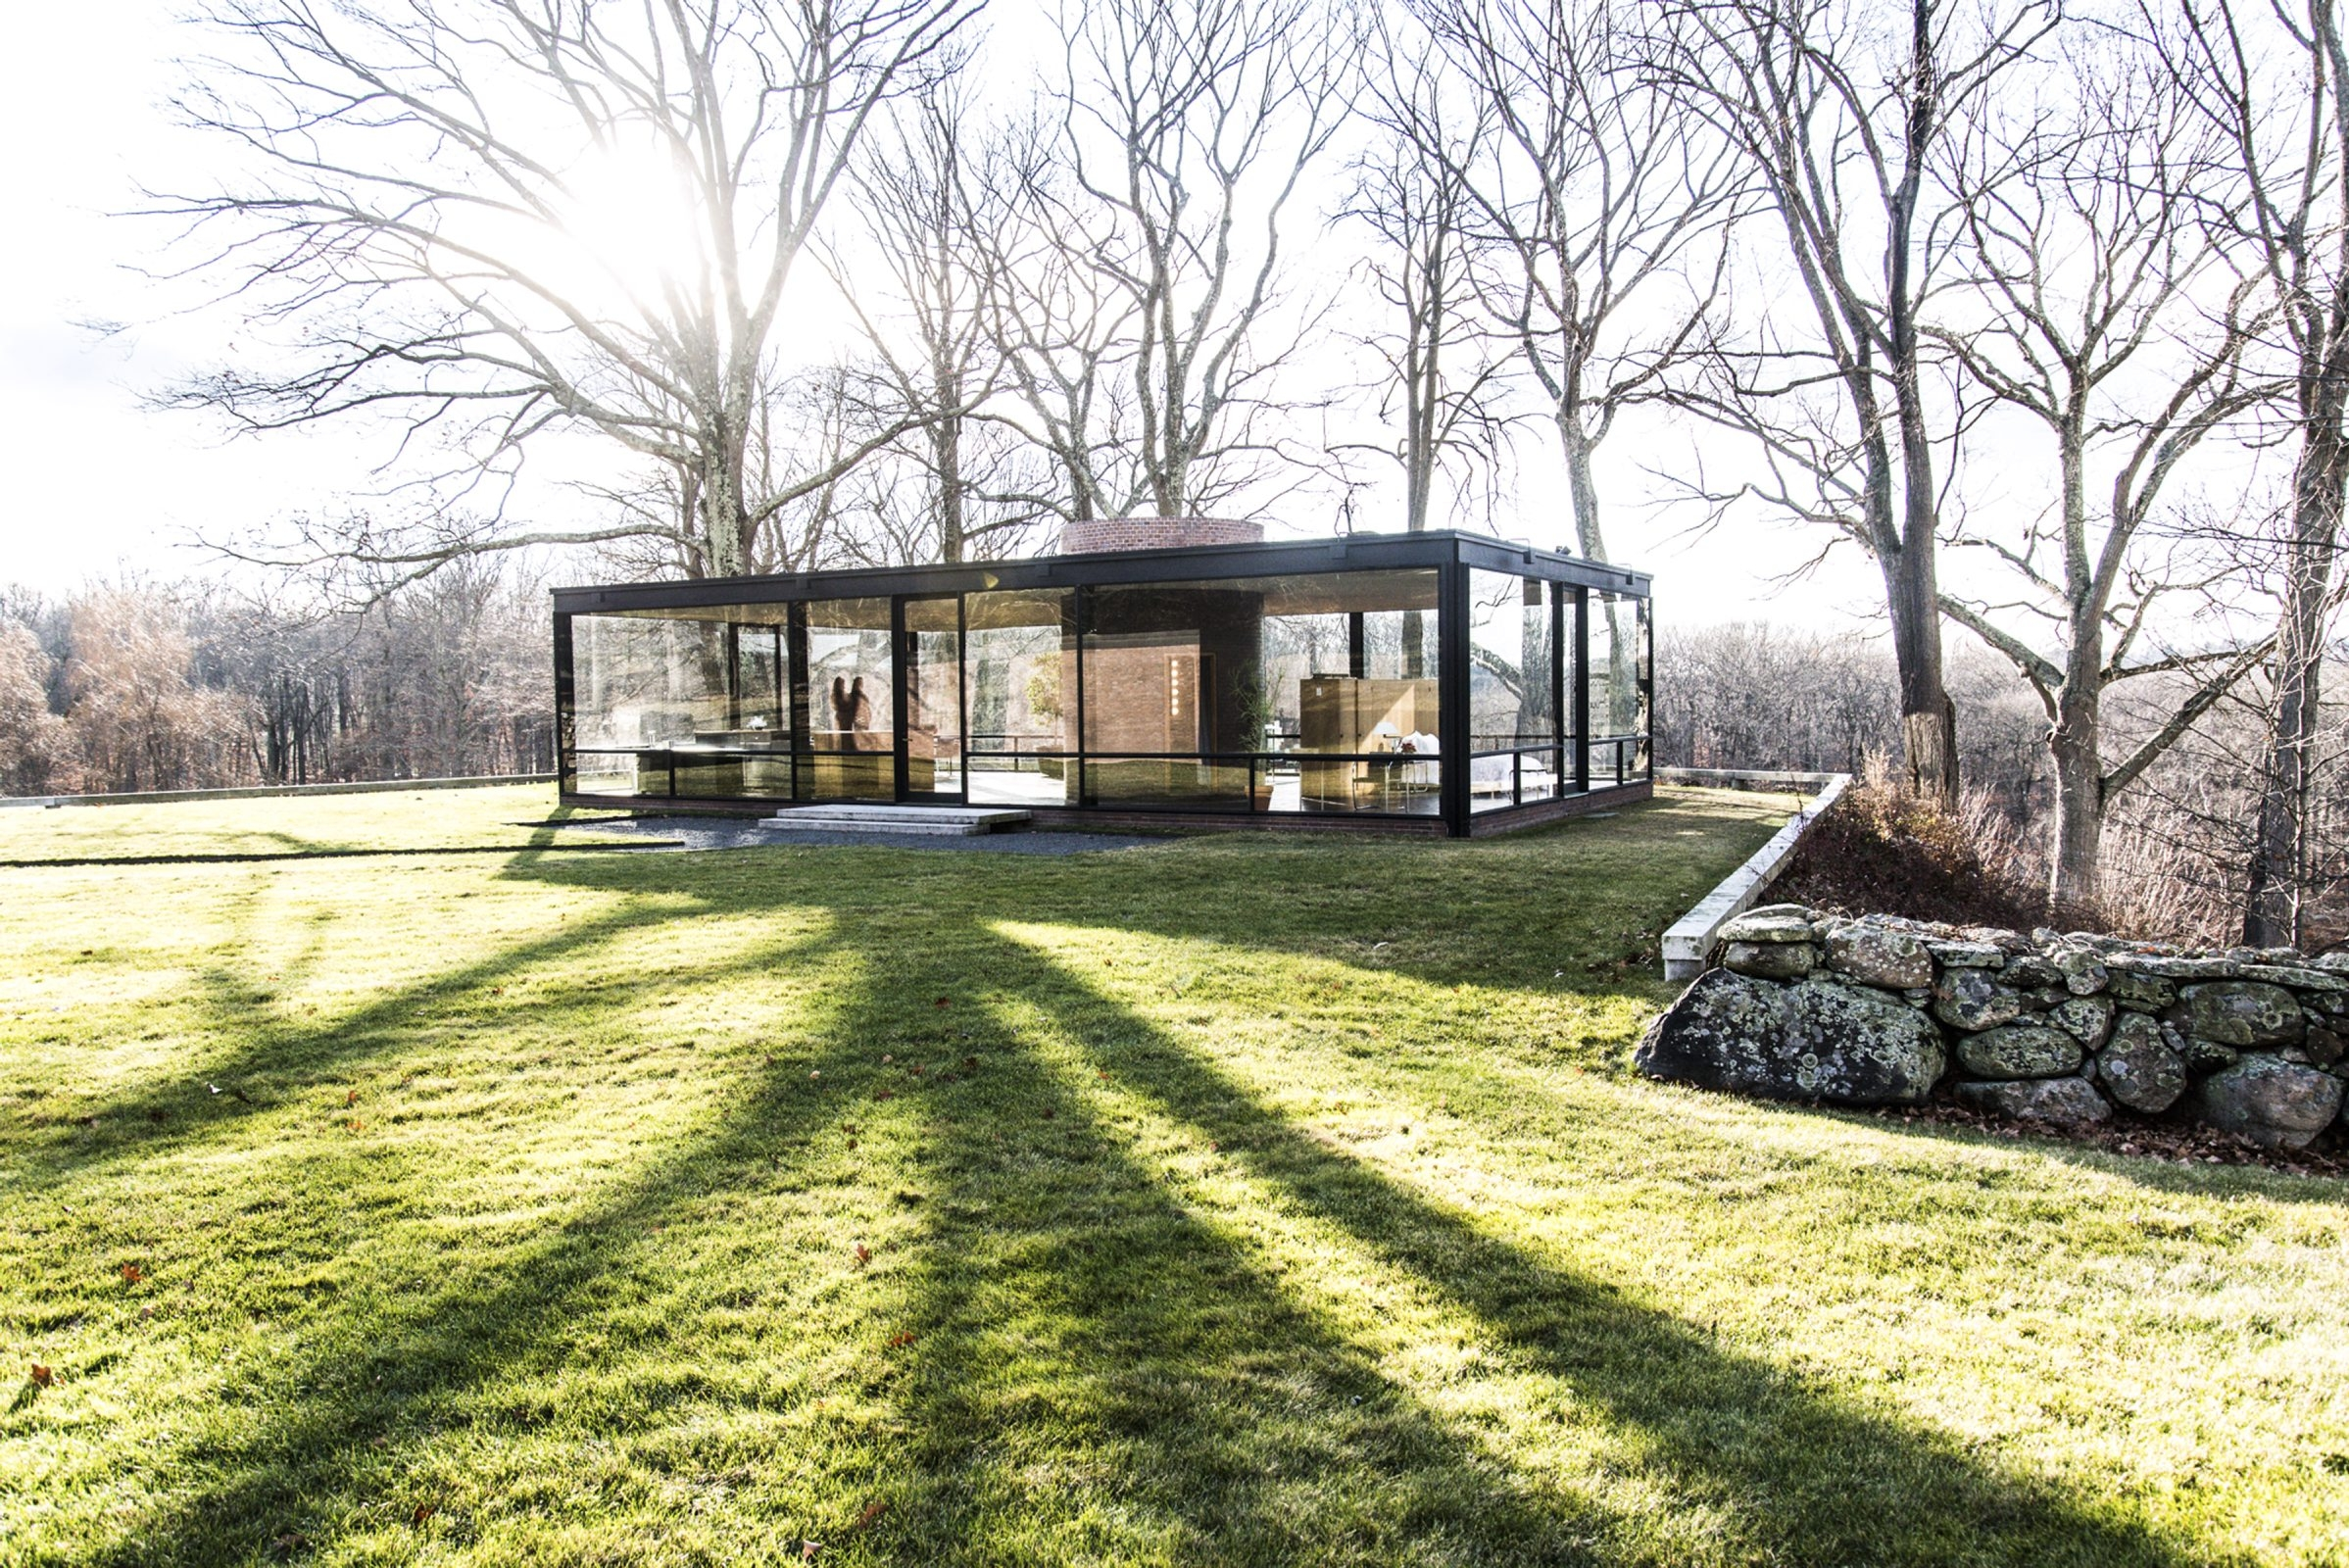 Philip Johnson's Glass House in New Canaan, Conn., Dec. 7, 2013. The house that cemented Johnson's reputation and is considered a modernist classic was open for an overnight stay for $30,000 in the Fantasy Gifts section of the annual Neiman Marcus Christmas Book. (Randy Harris/The New York Times)